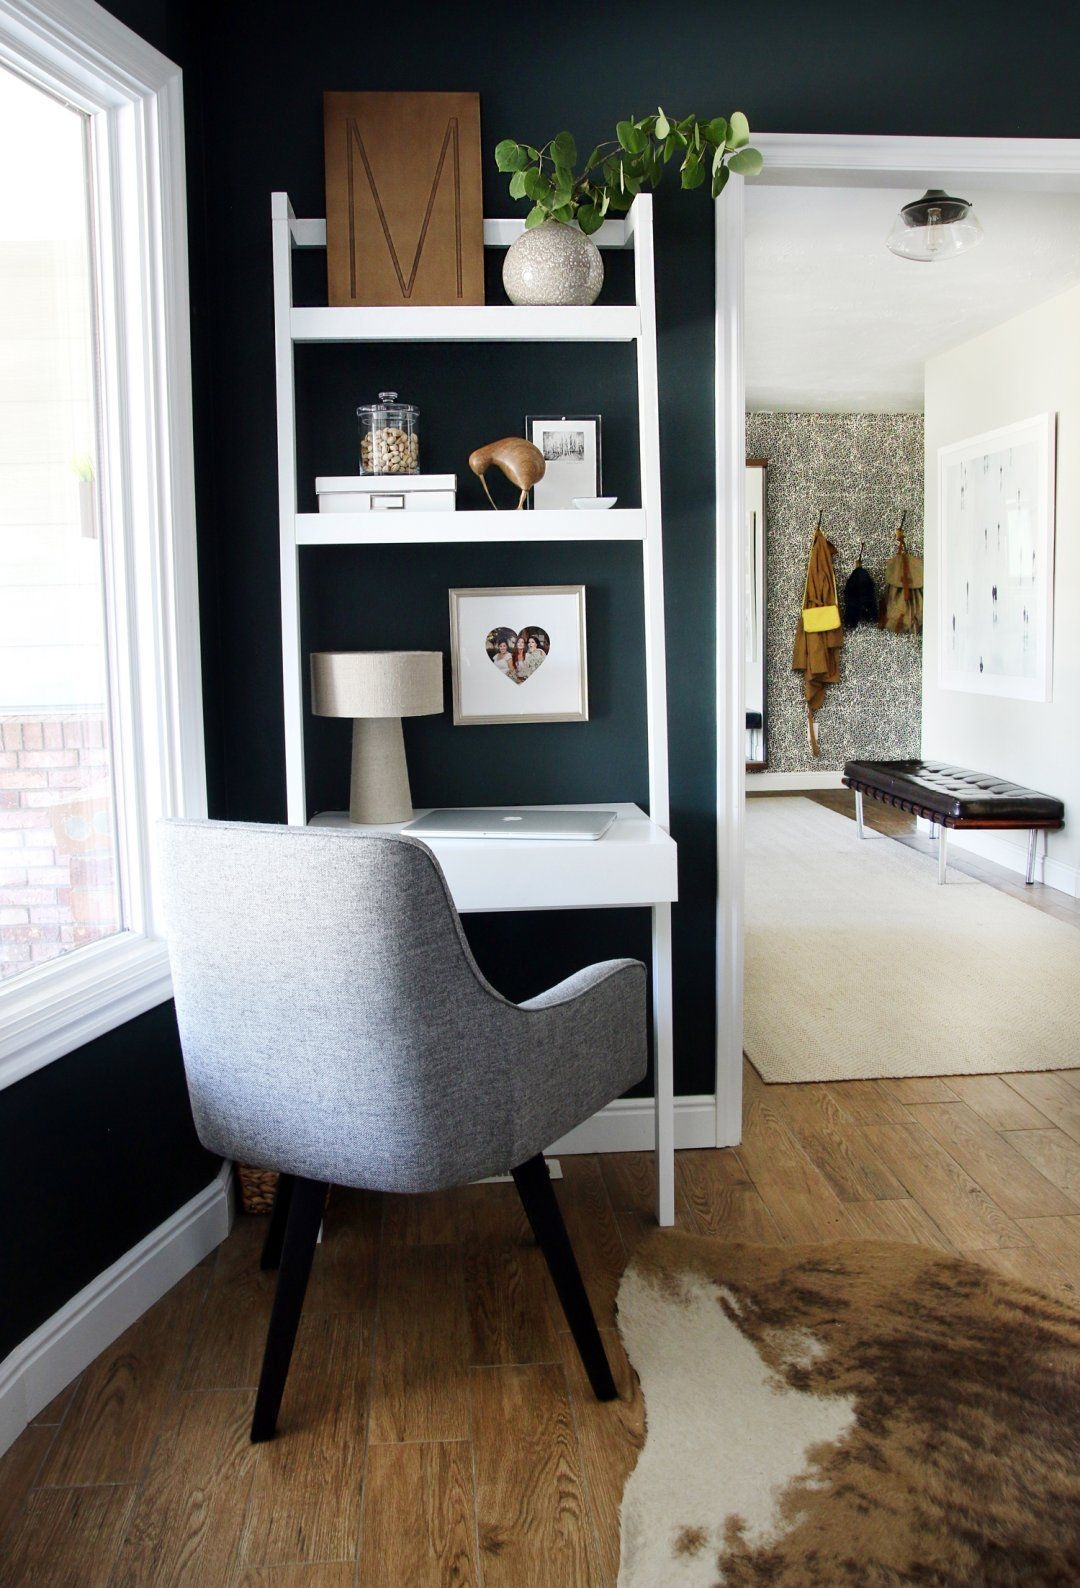 Hottest Living Room Design Ideas In A Small Space To Try03